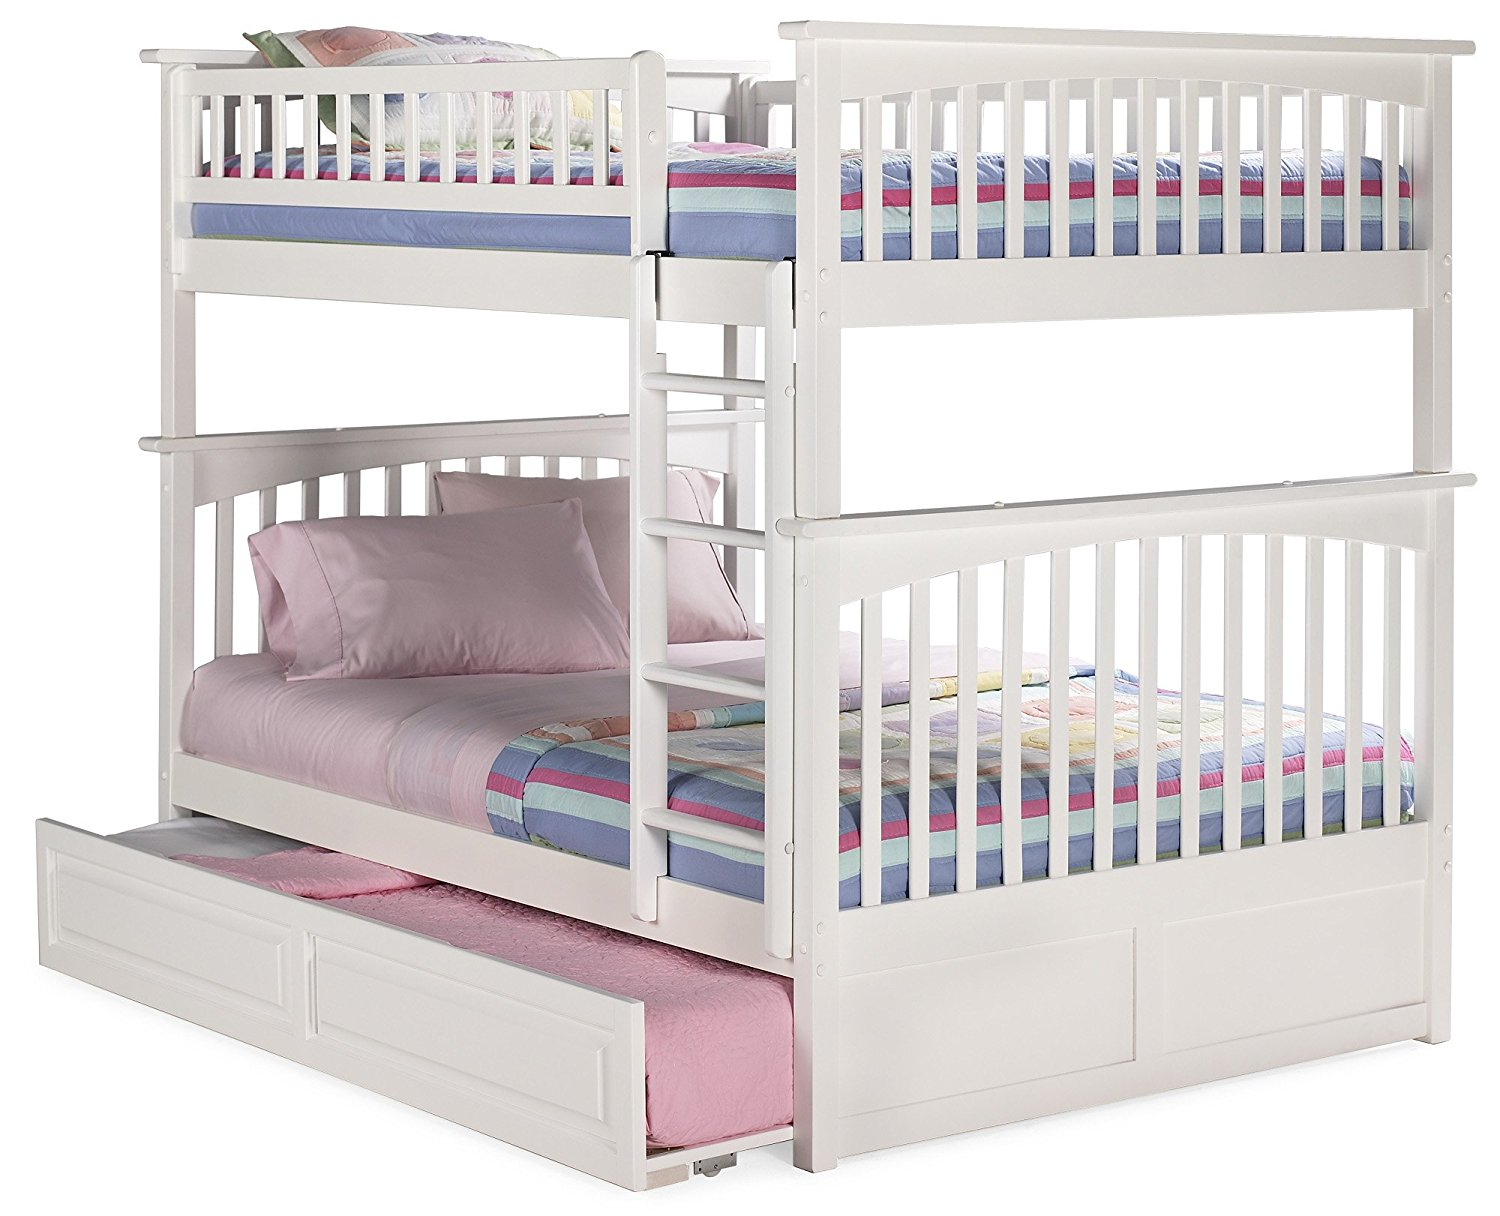 Columbia Bunk Bed with Trundle Bed, Full Over Full, White